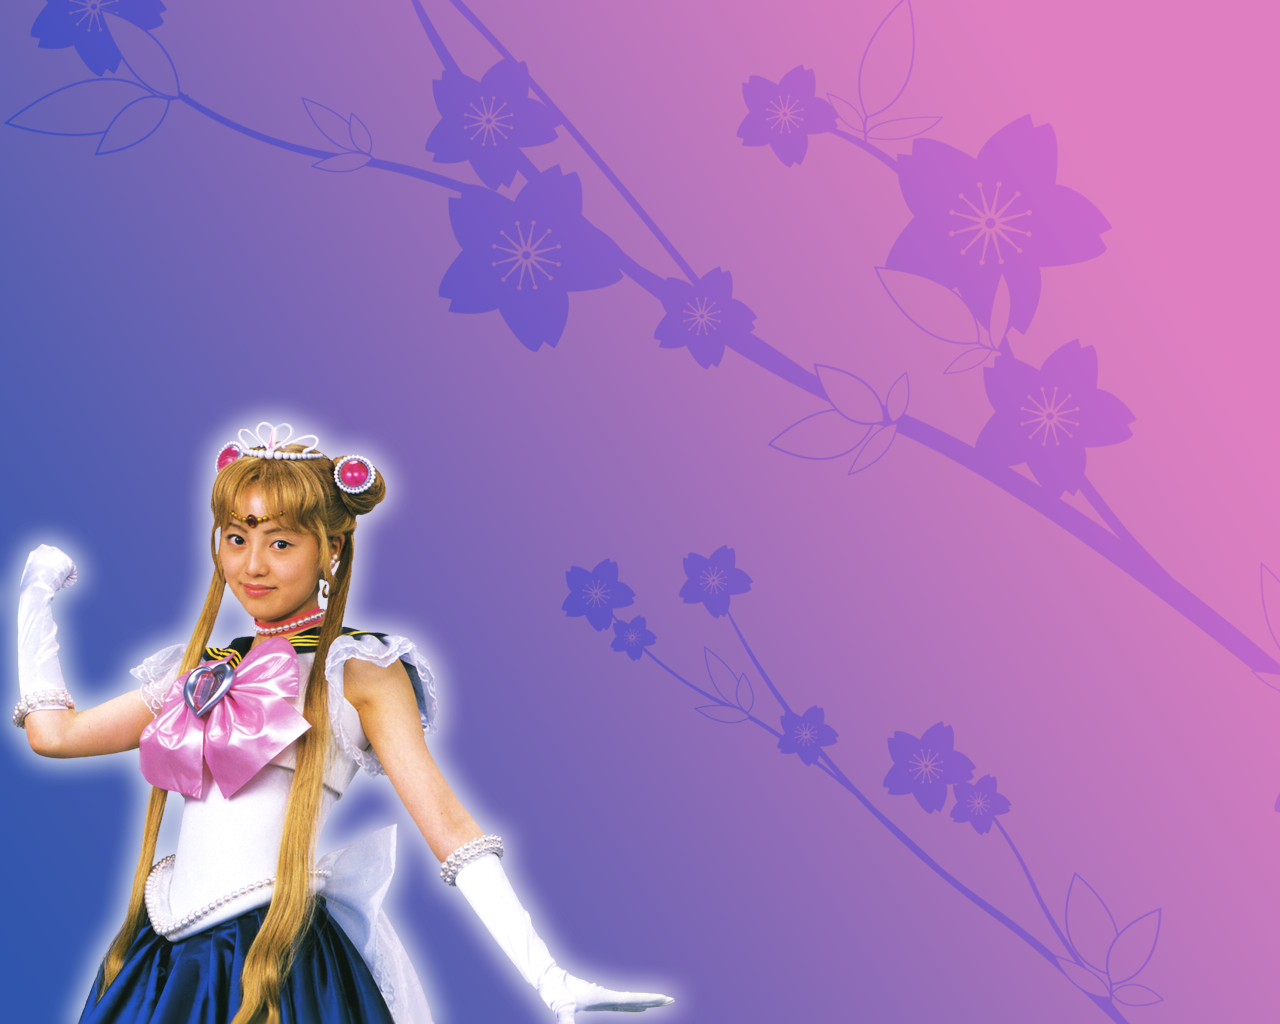 Usagi Tsukino - Sailor Moon Princess_1280